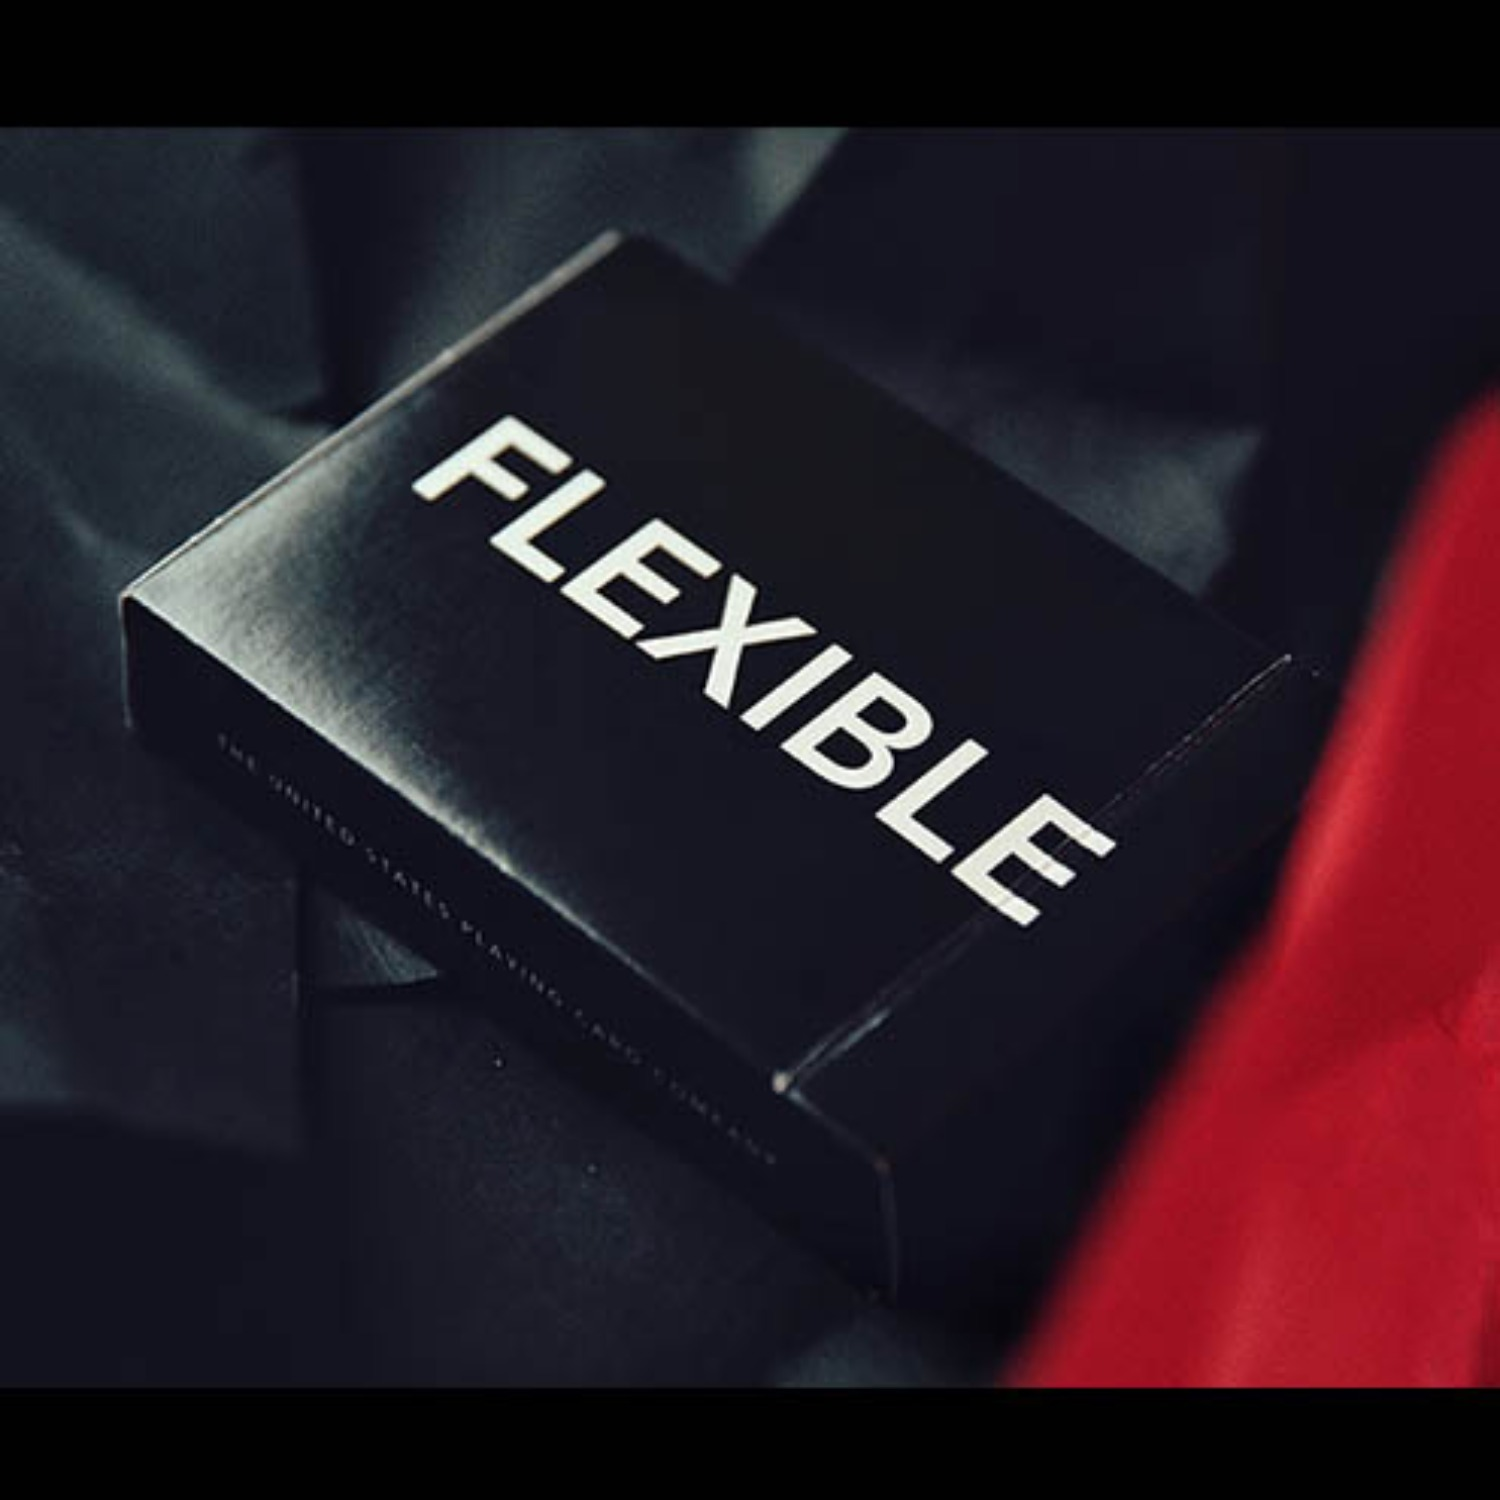 [플렉시블/블랙]FLEXIBLE (Black) Playing Cards by TCC